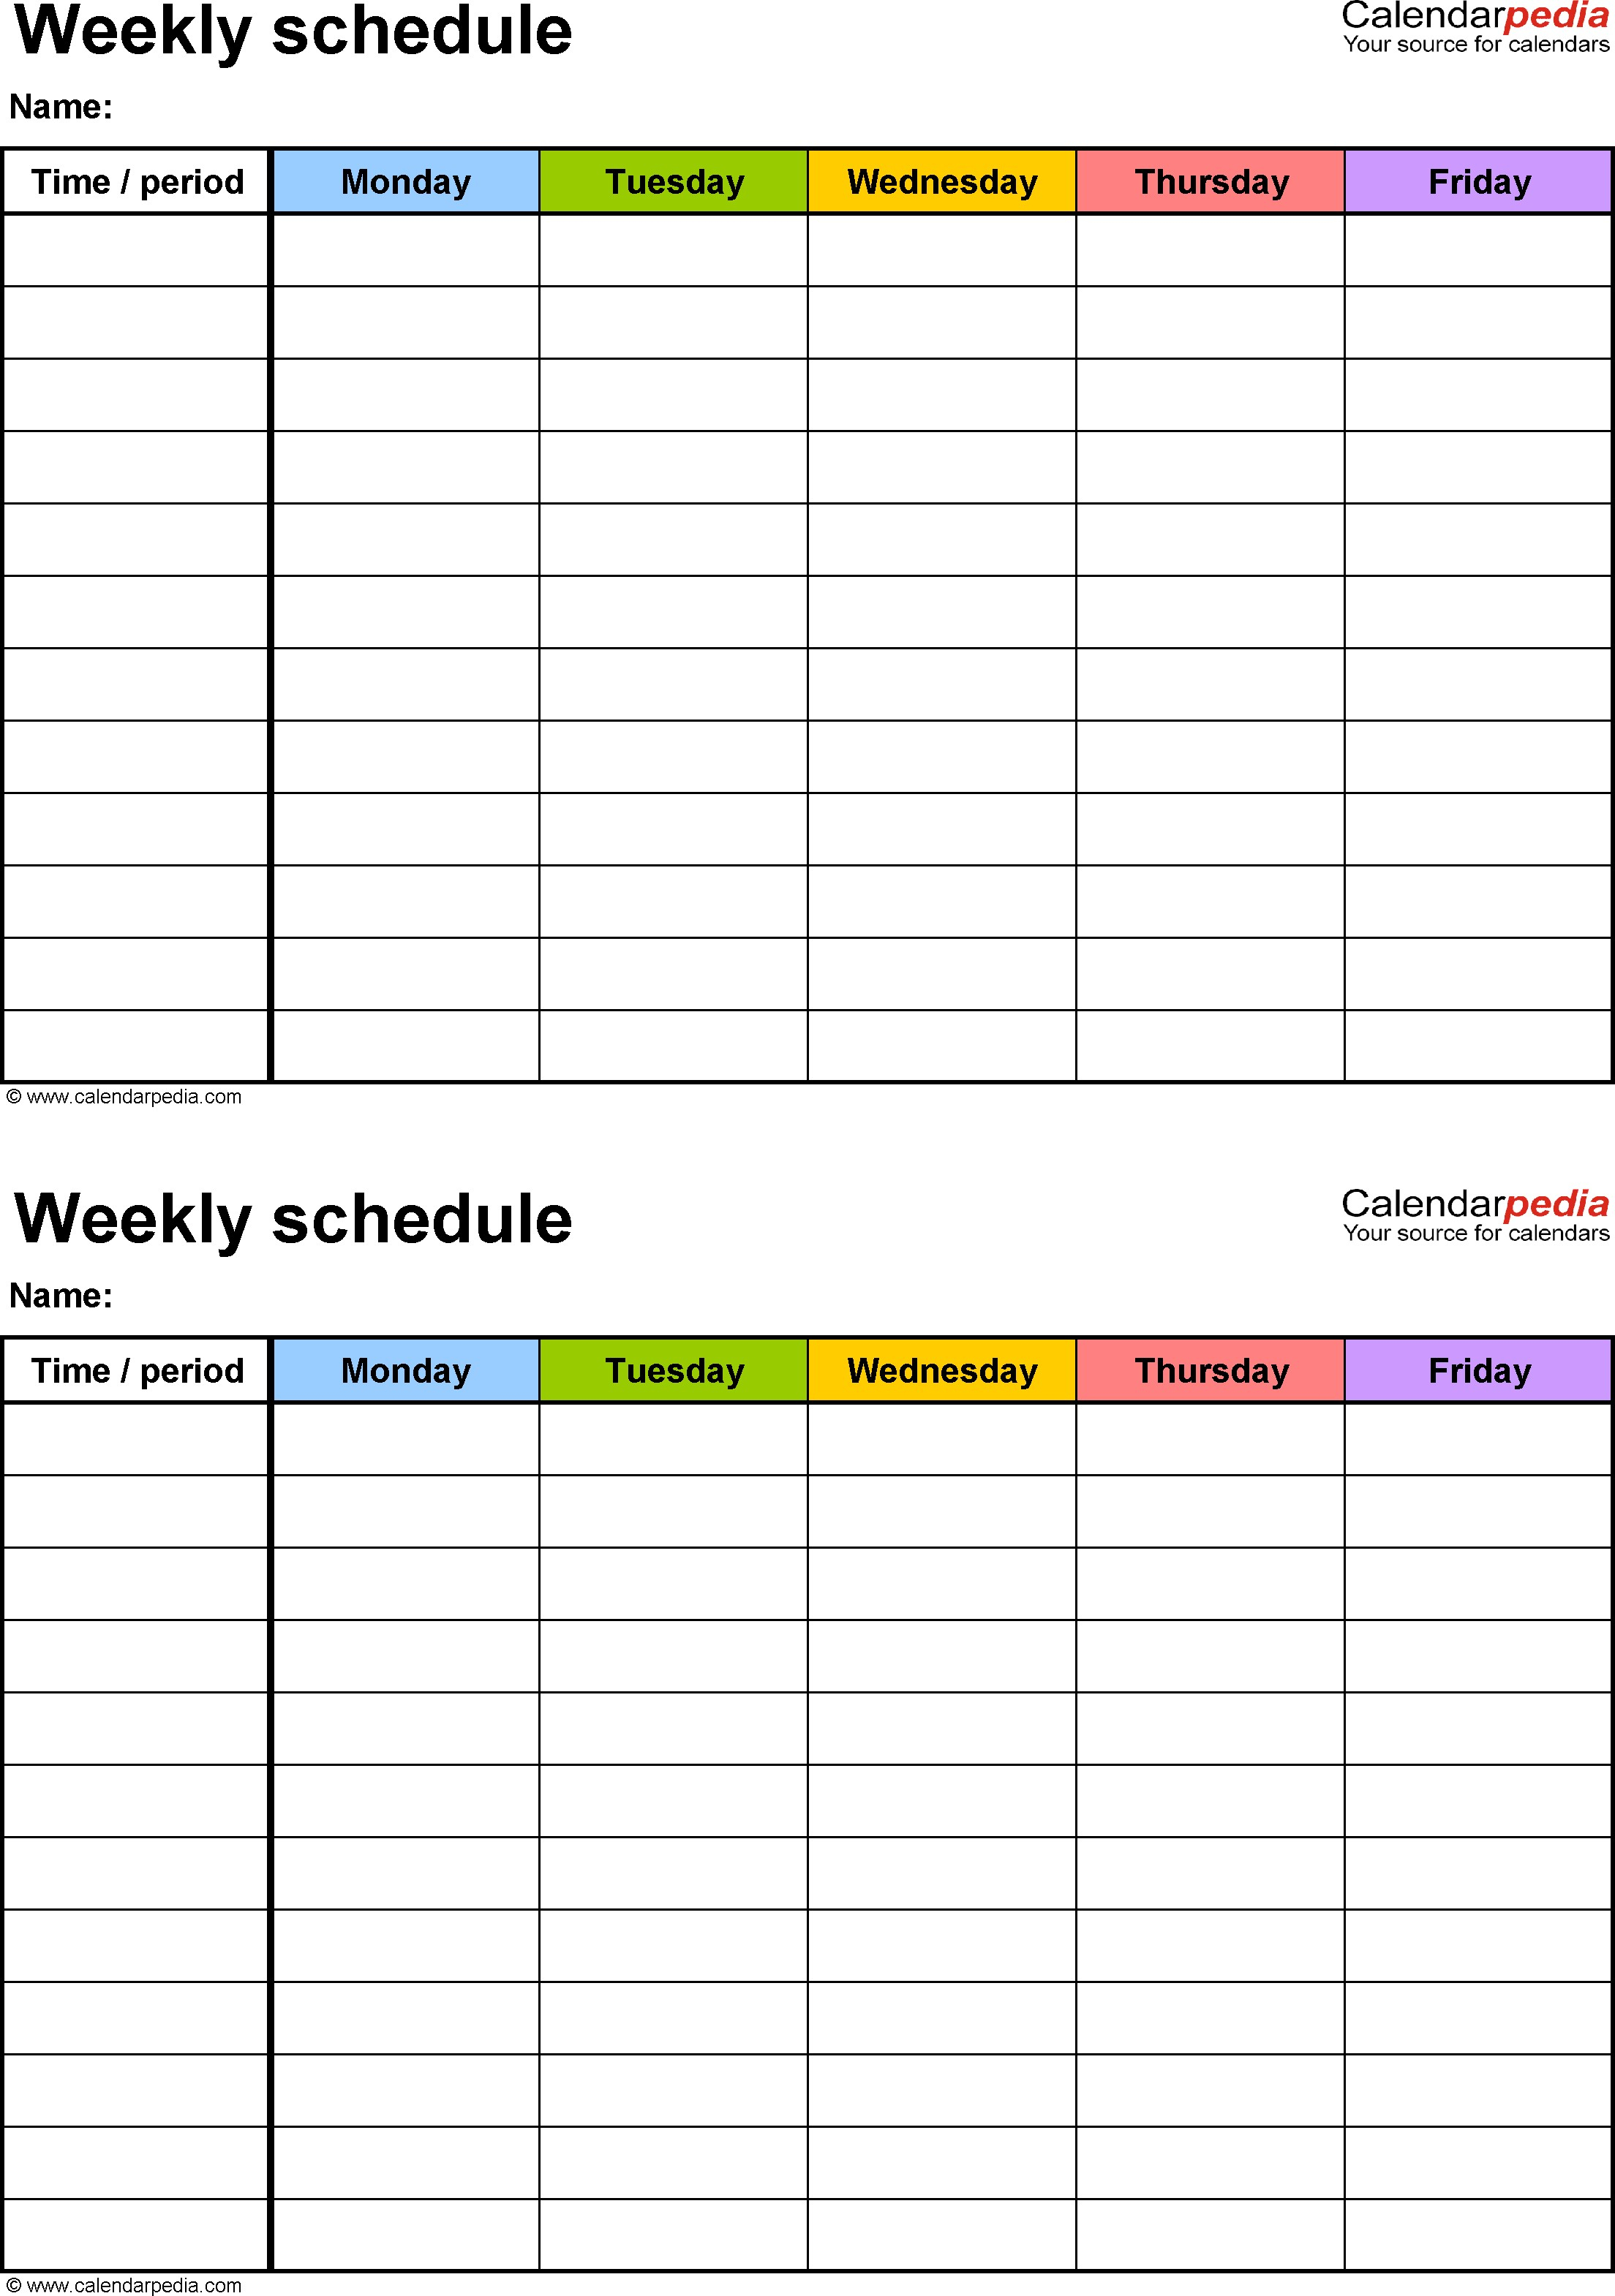 Blank Calendar Day Page Printable For Free Of Charge – Calendaro